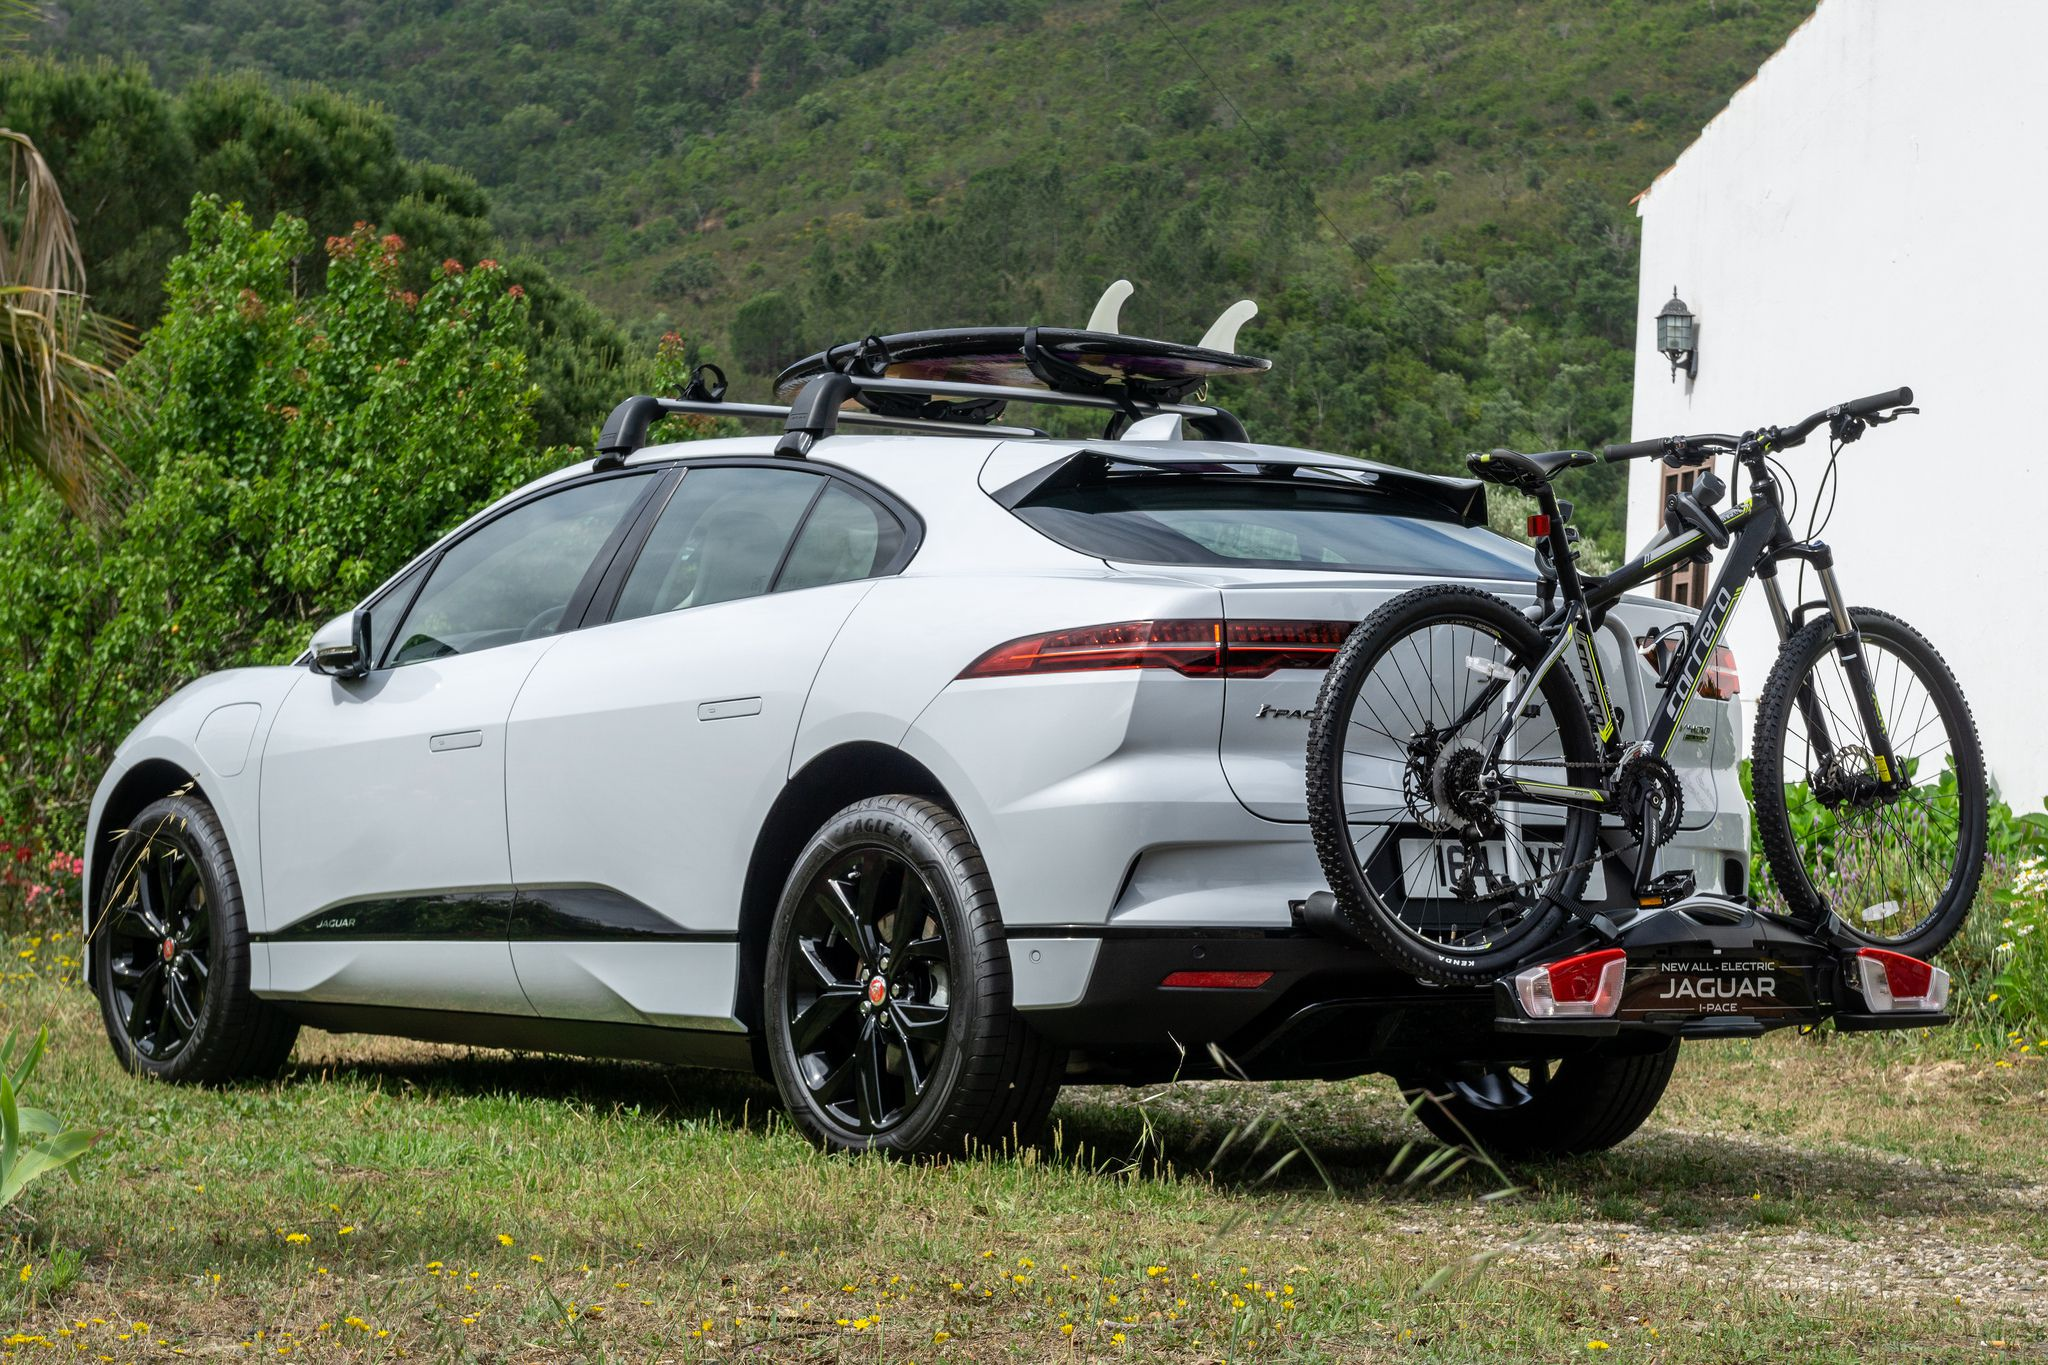 Bicycle Jaguar attached to the Jaguar i Pace 2018